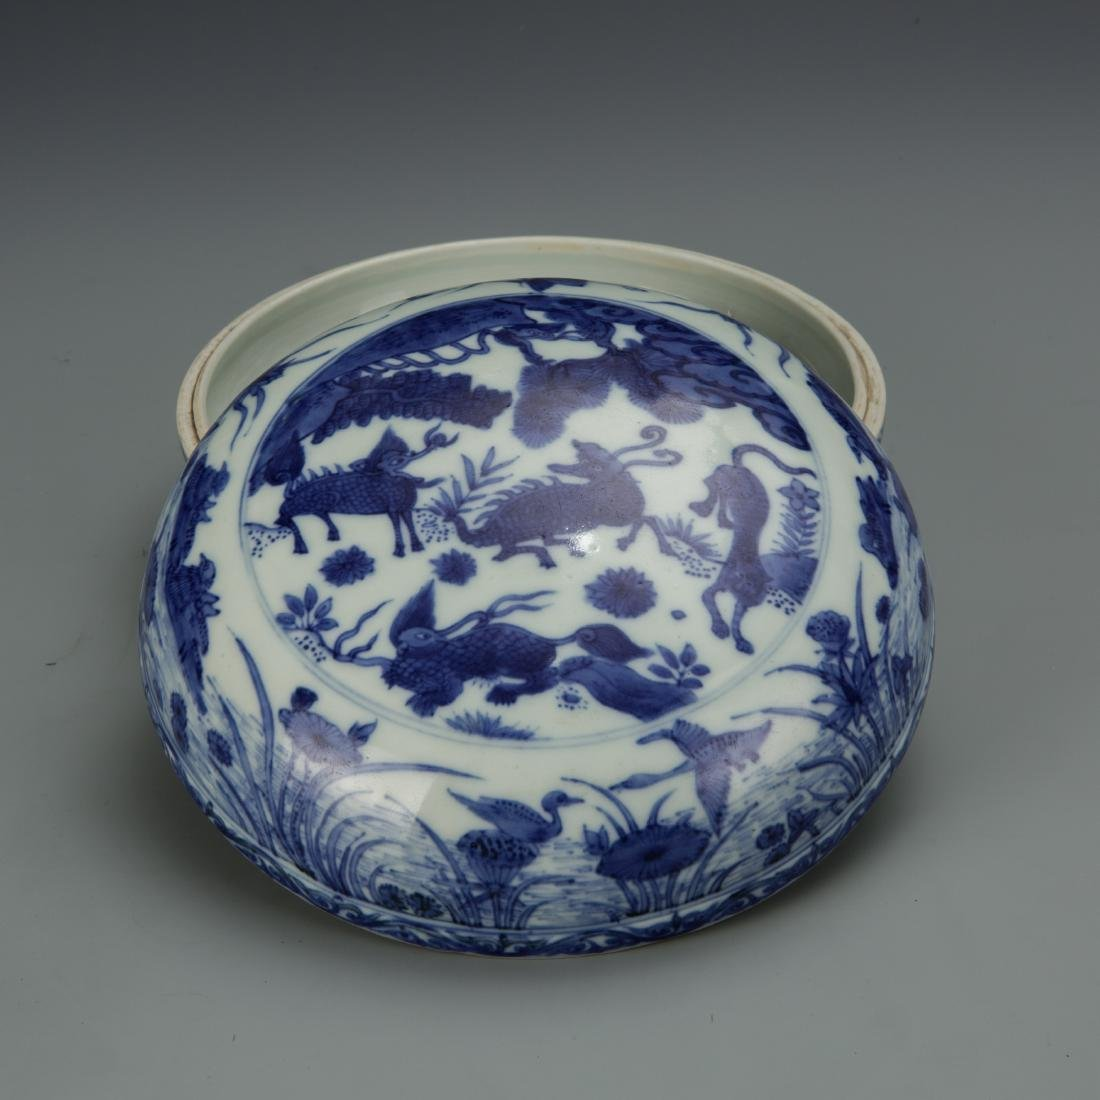 Blue and White Porcelain Box with Mark - 4